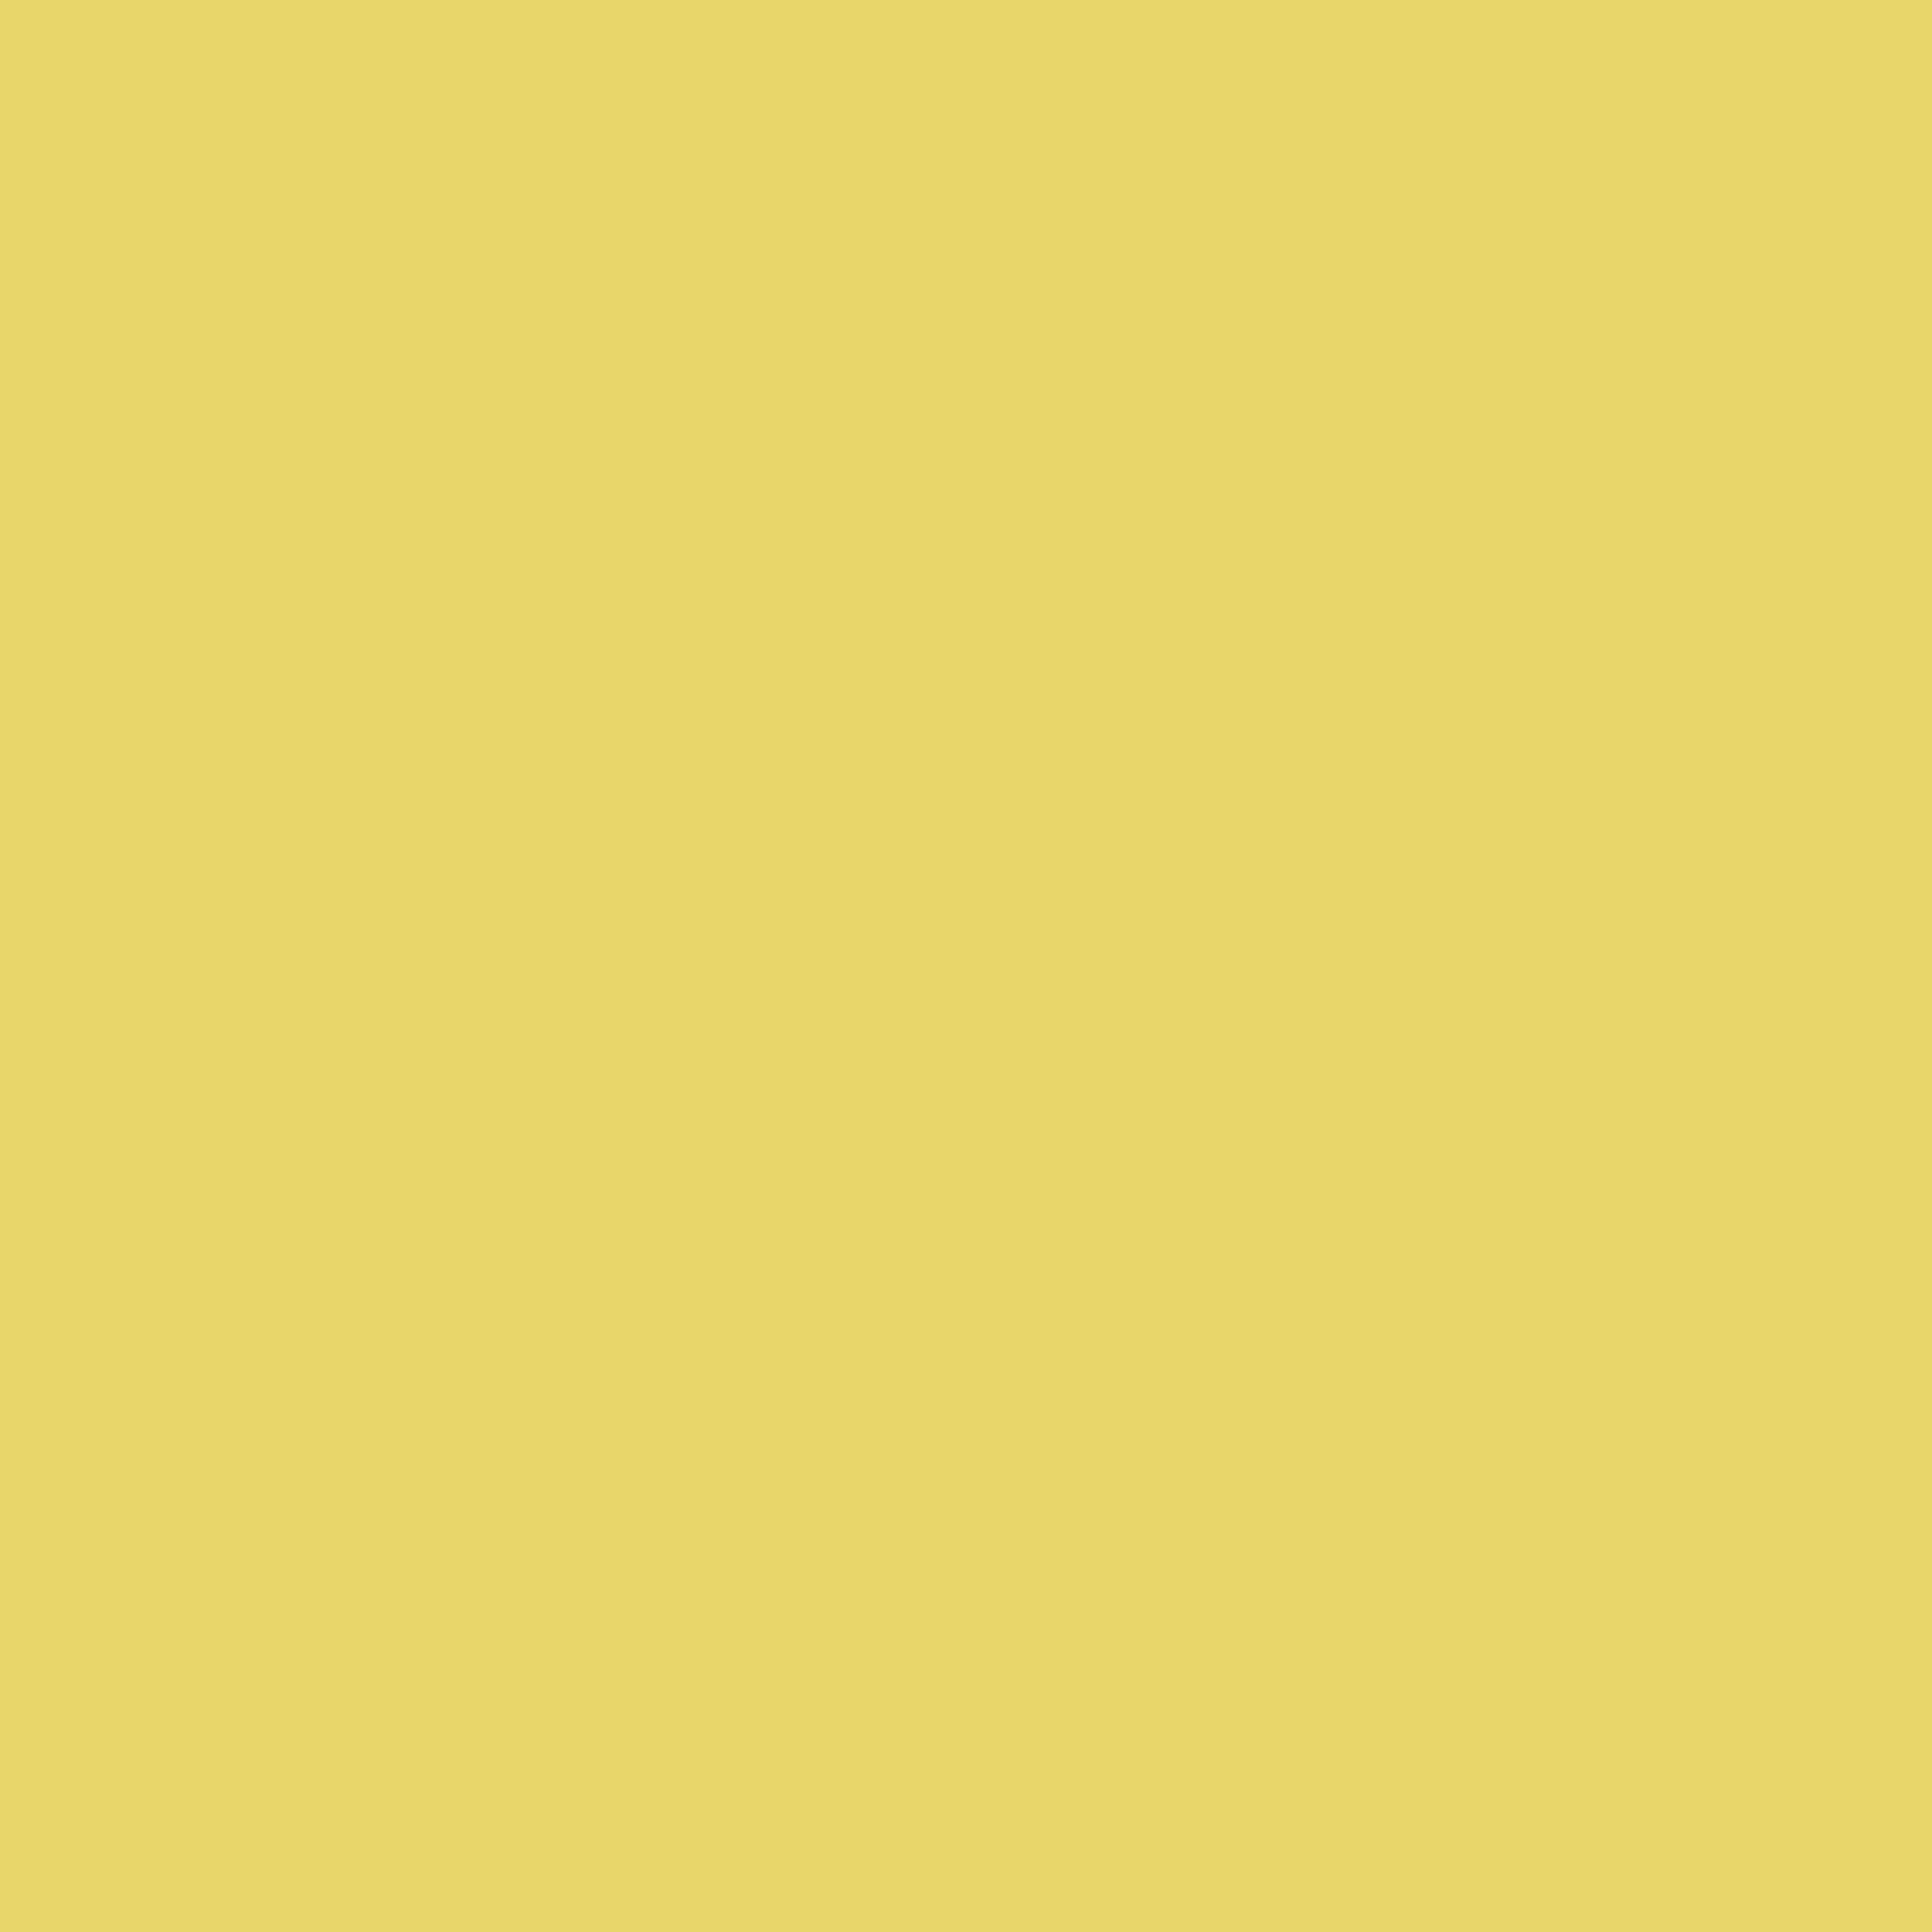 2732x2732 Arylide Yellow Solid Color Background